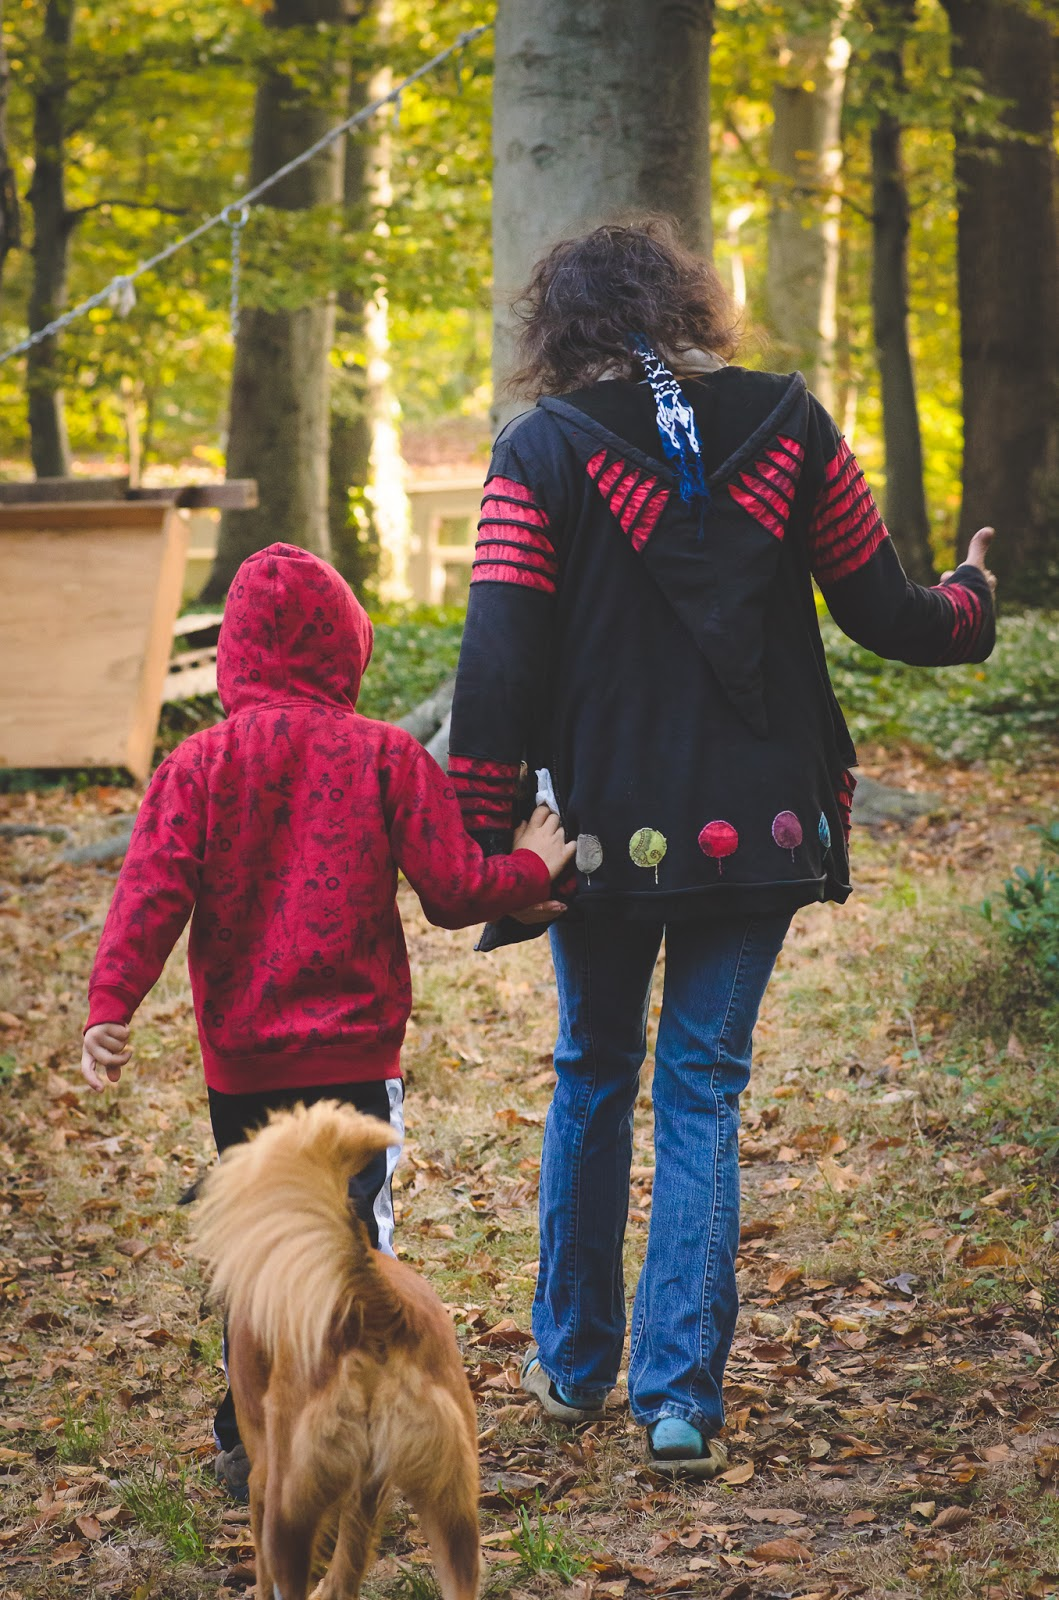 homeschooling family with dog in the woods ©Diana Sherblom Photography